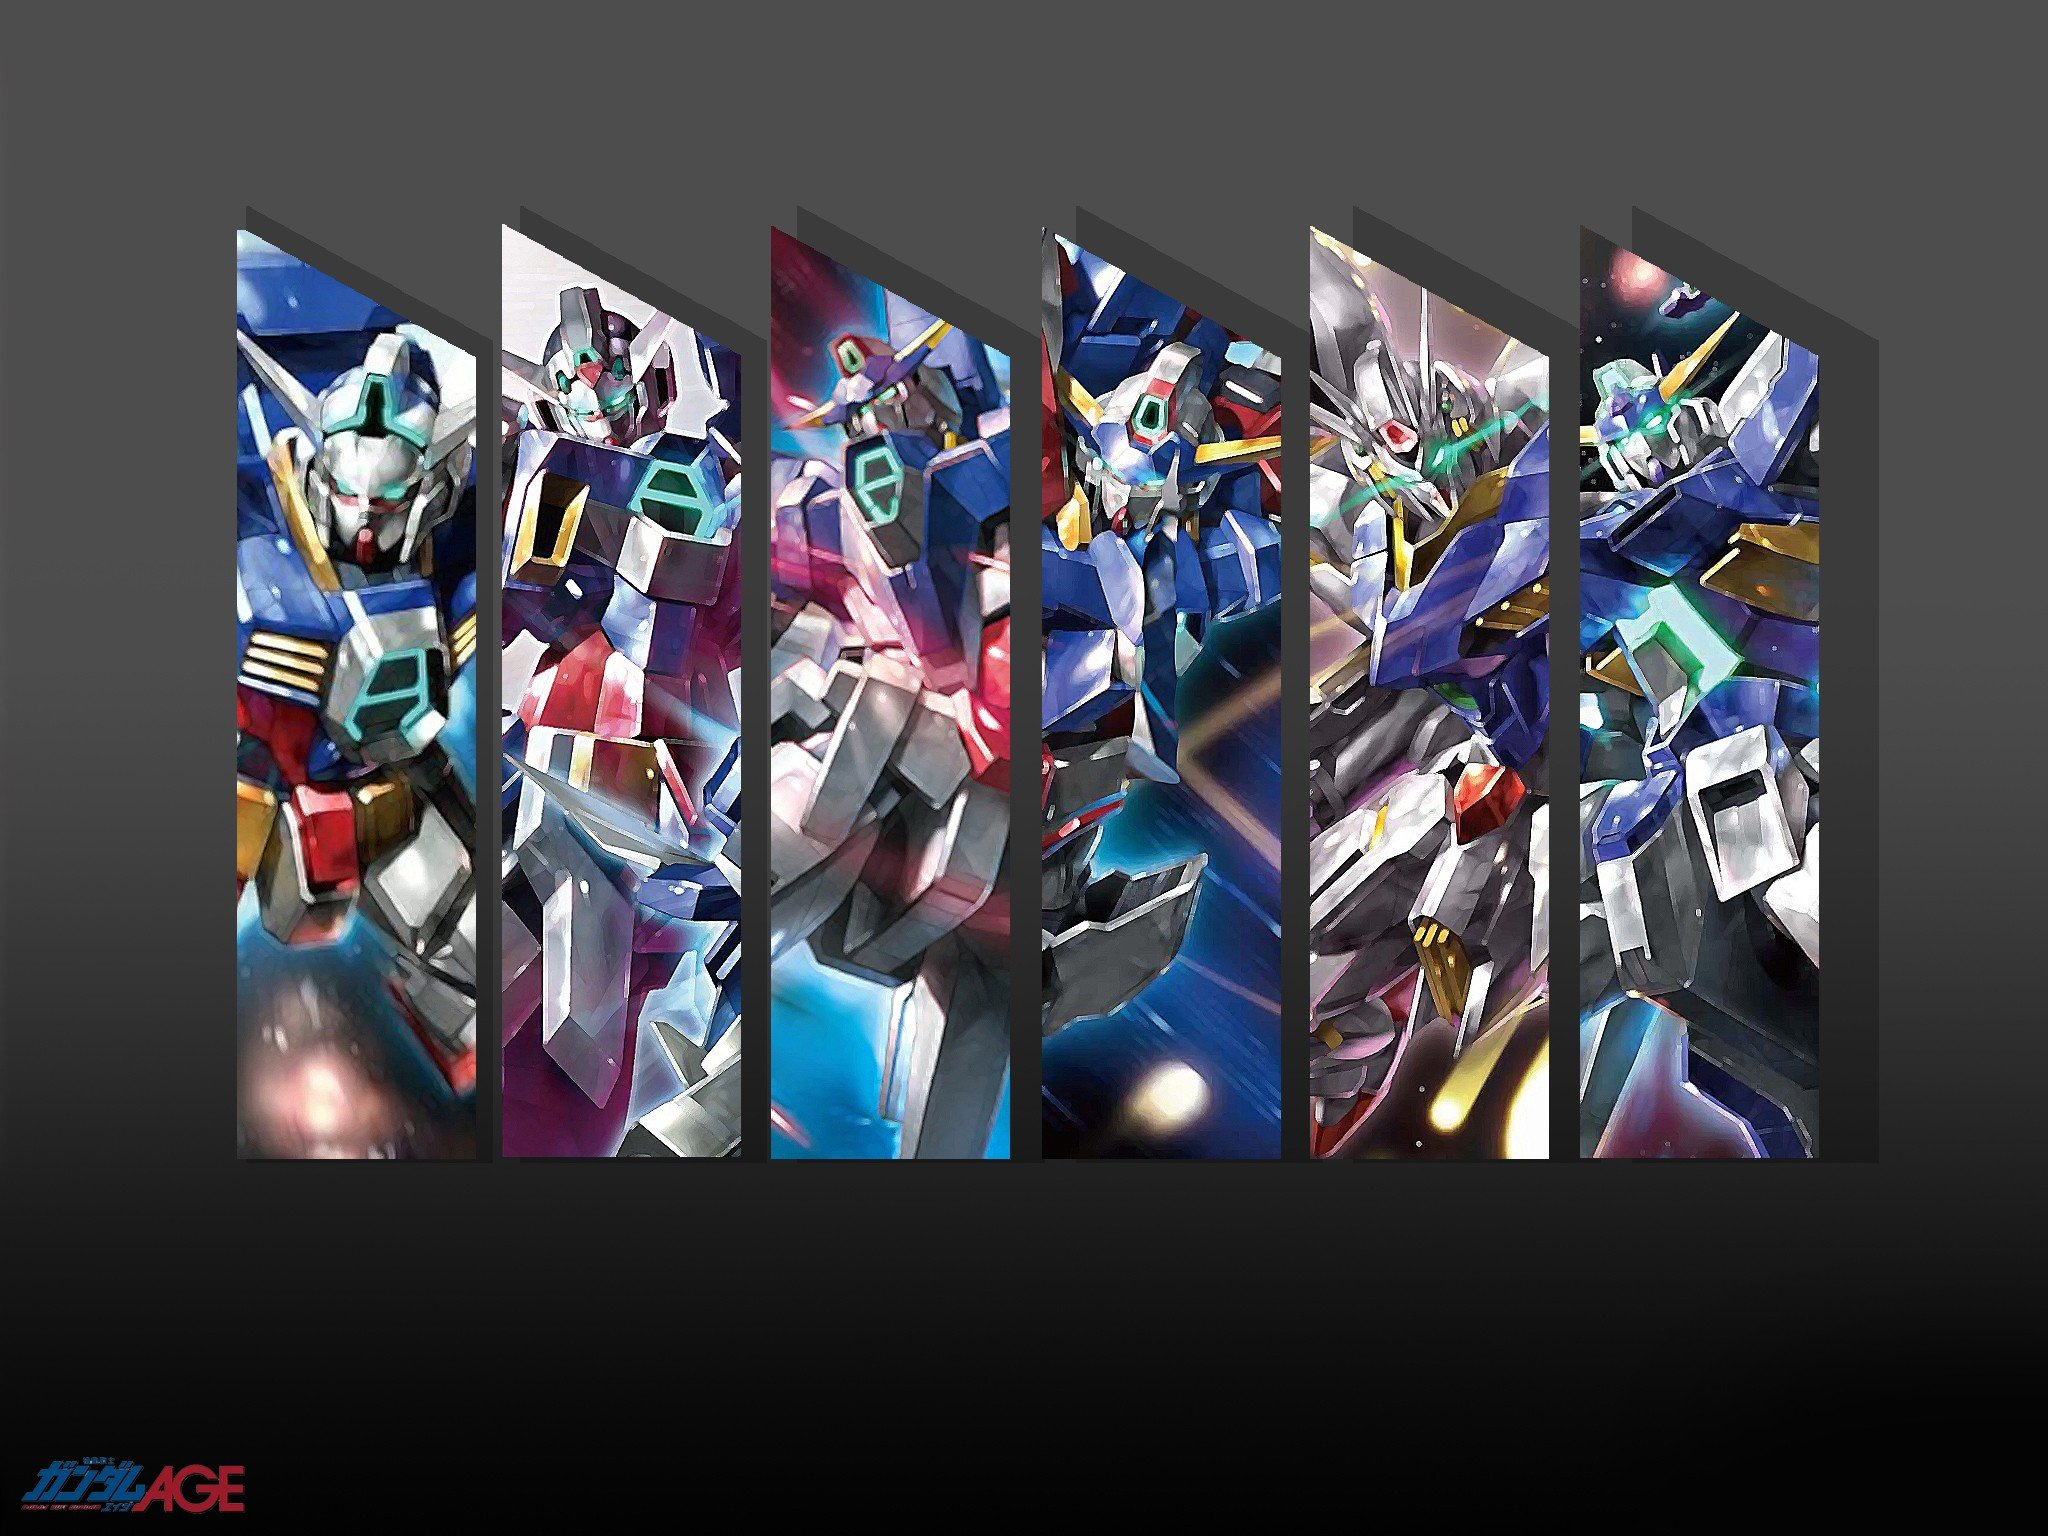 Gundam mecha Gundam age wallpaper background 2048x1536